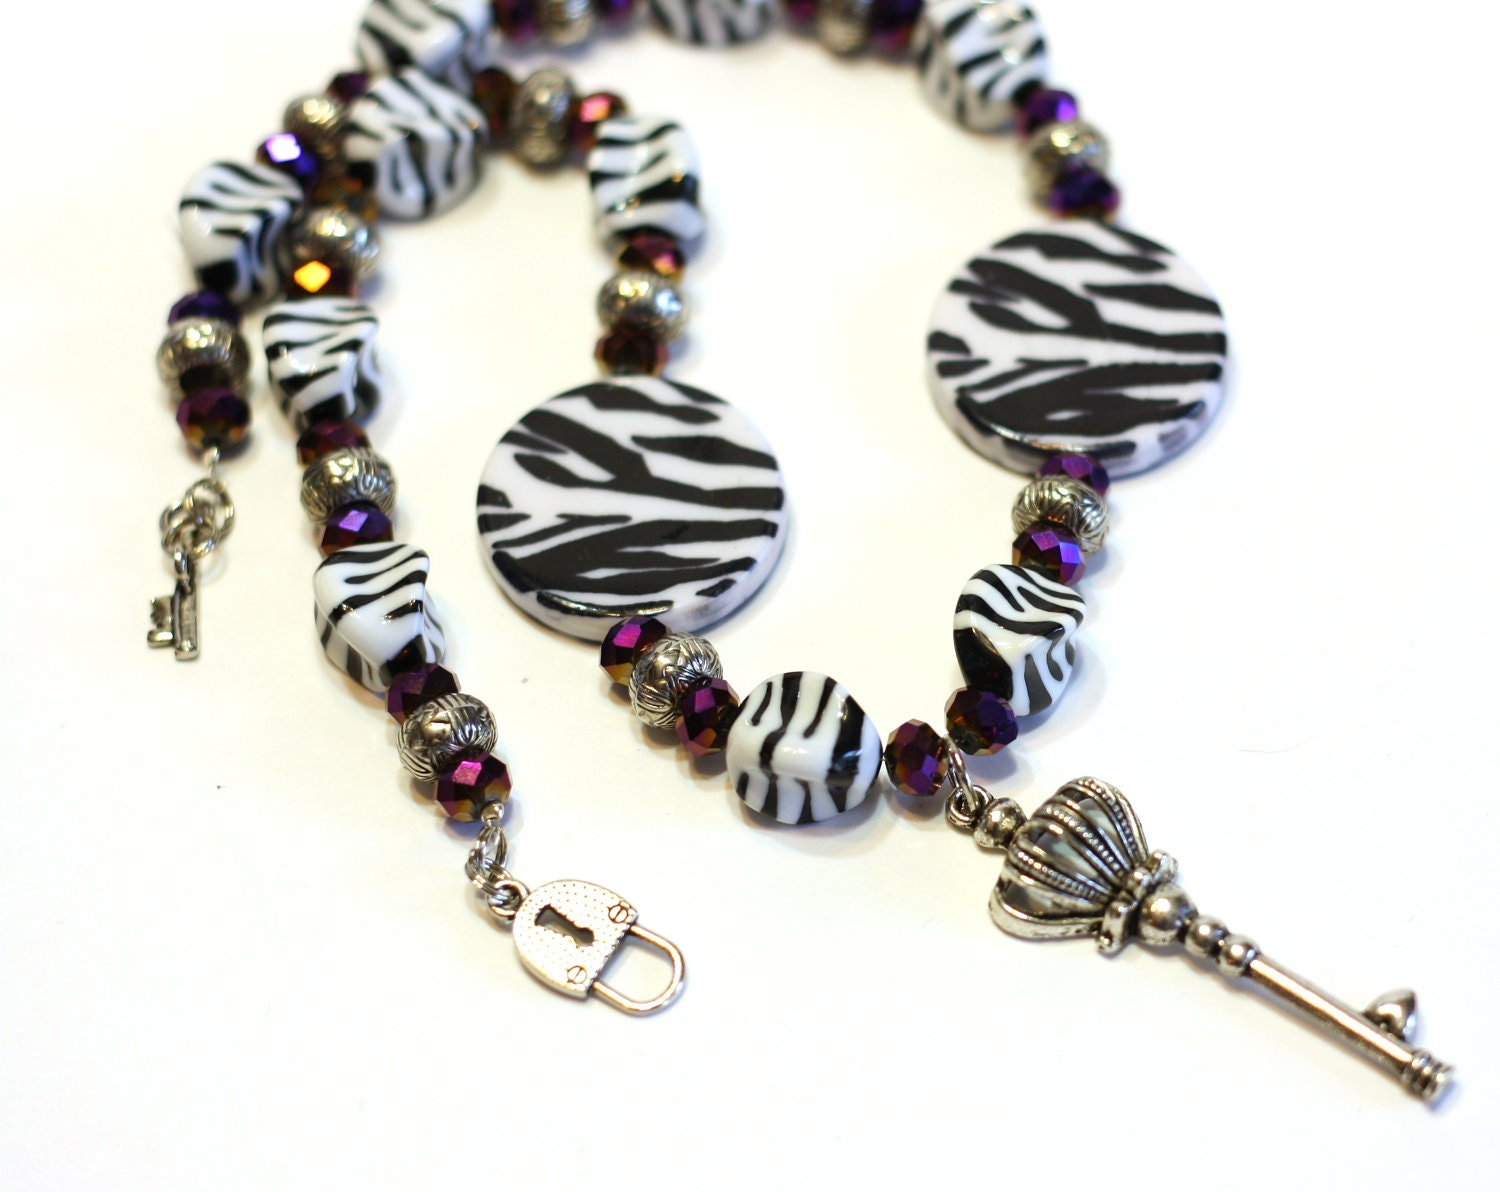 zebra beaded necklace in black and white stripes with purple